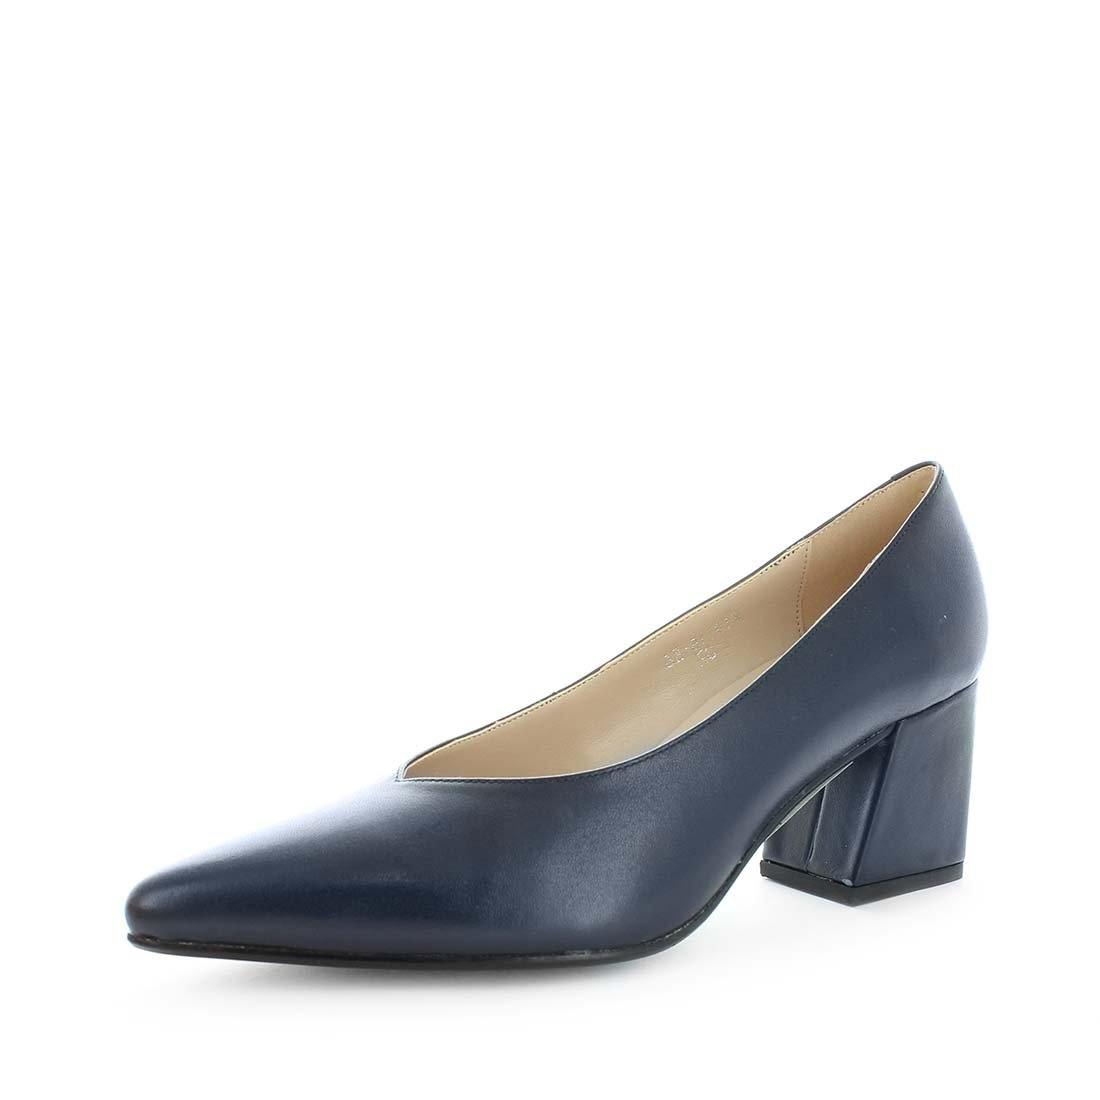 hamber, zola, zola collection, womens shoes, ladies shoes, womens heels, ladies heels, womens office shoes, ladies office heels, leather shoes, womens leather heels, pointy toe shoe, pointed toe heels, 5cm block heel shoe, 5mm block heel, professional heels, professional shoes, classic court shoe, womens block heel shoe, navy office shoe, navy heels, navy block heels,